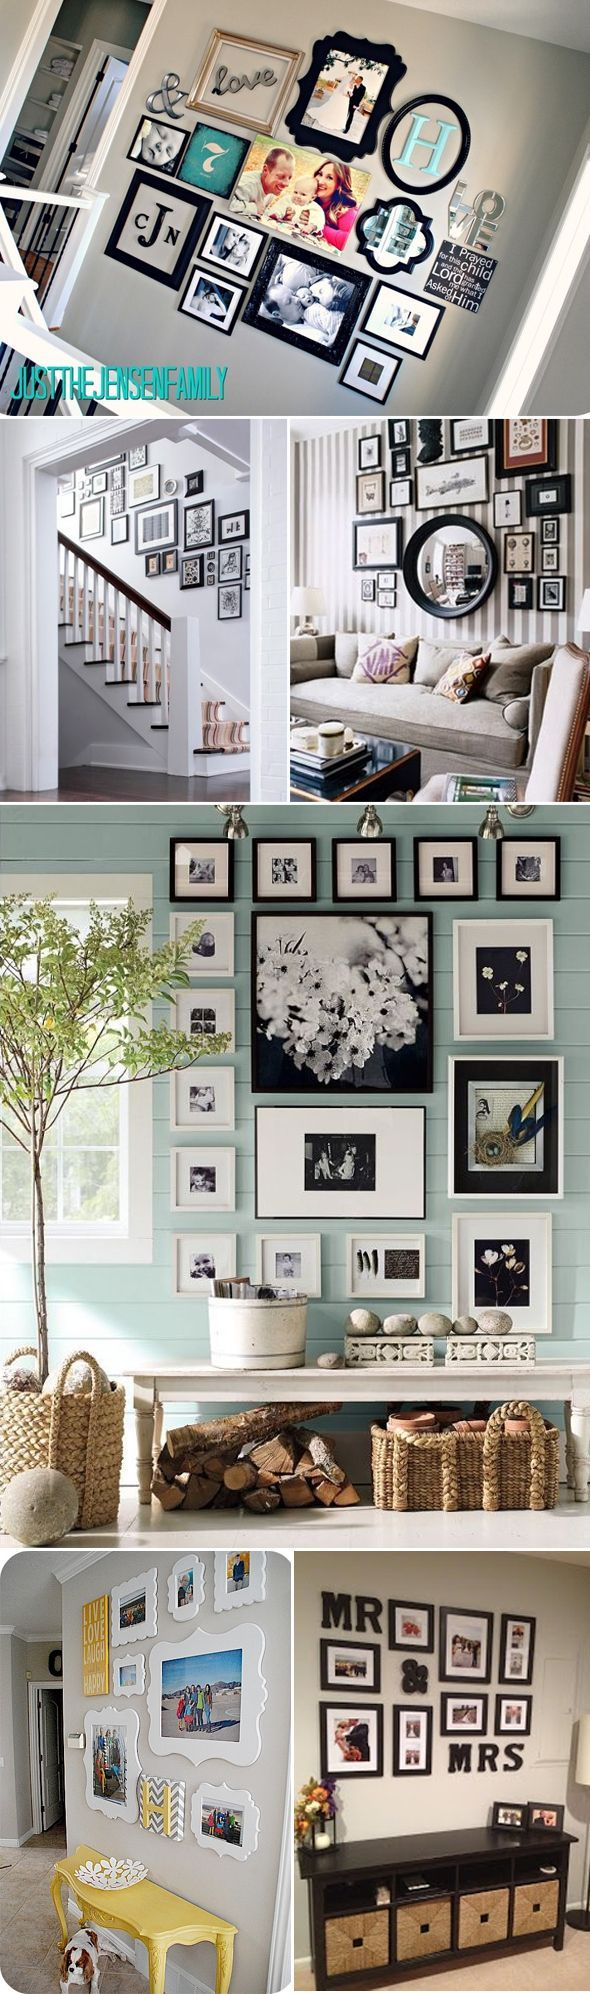 Family photos gallery wall ideas.